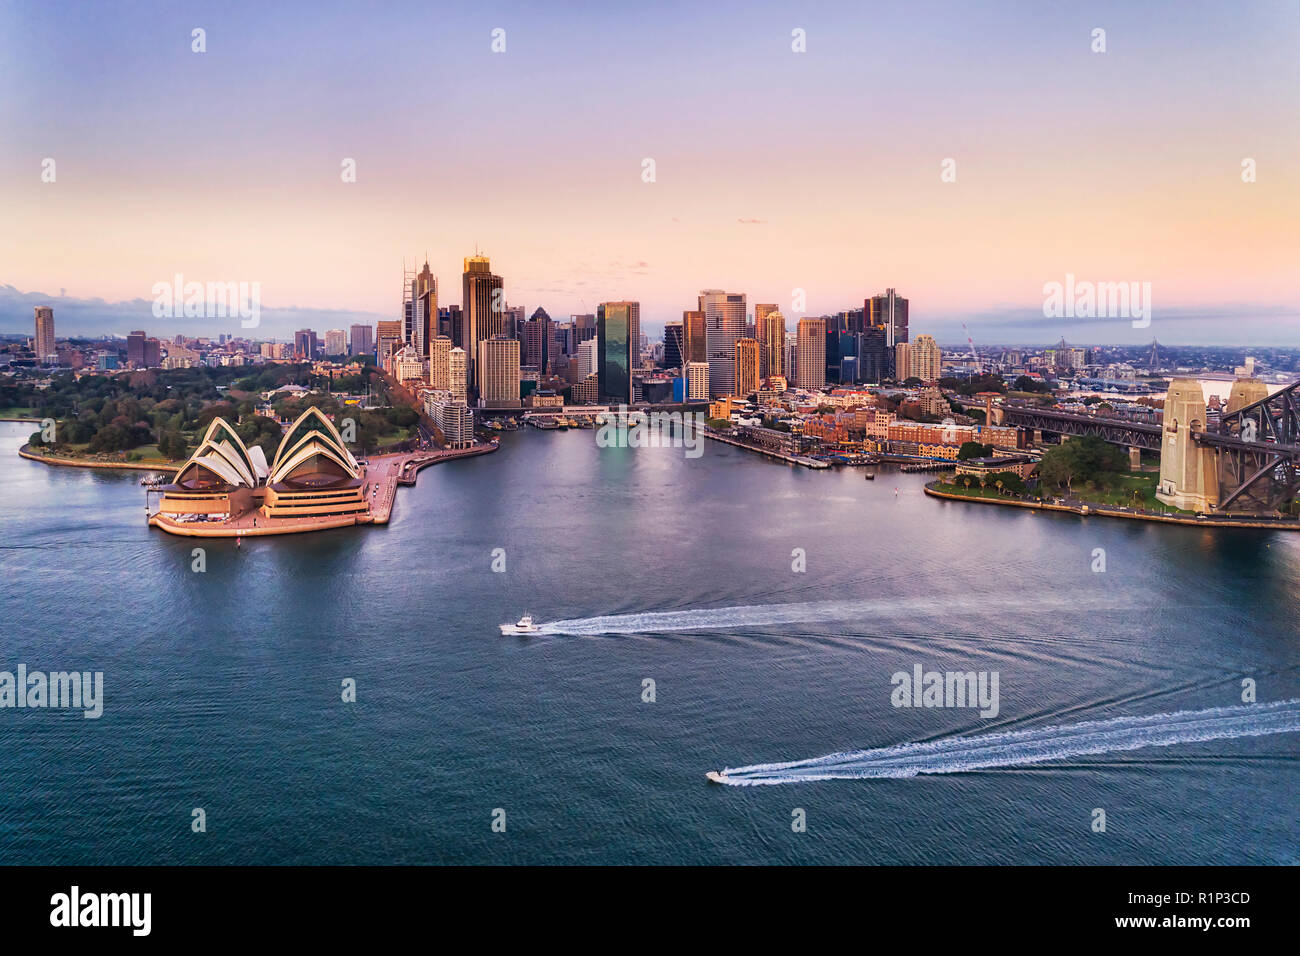 Two speed boats on calm waters of Sydney harbour in view of Circular quay and city CBD high-rise towers and Australian landmarks at sunrise with pink  - Stock Image